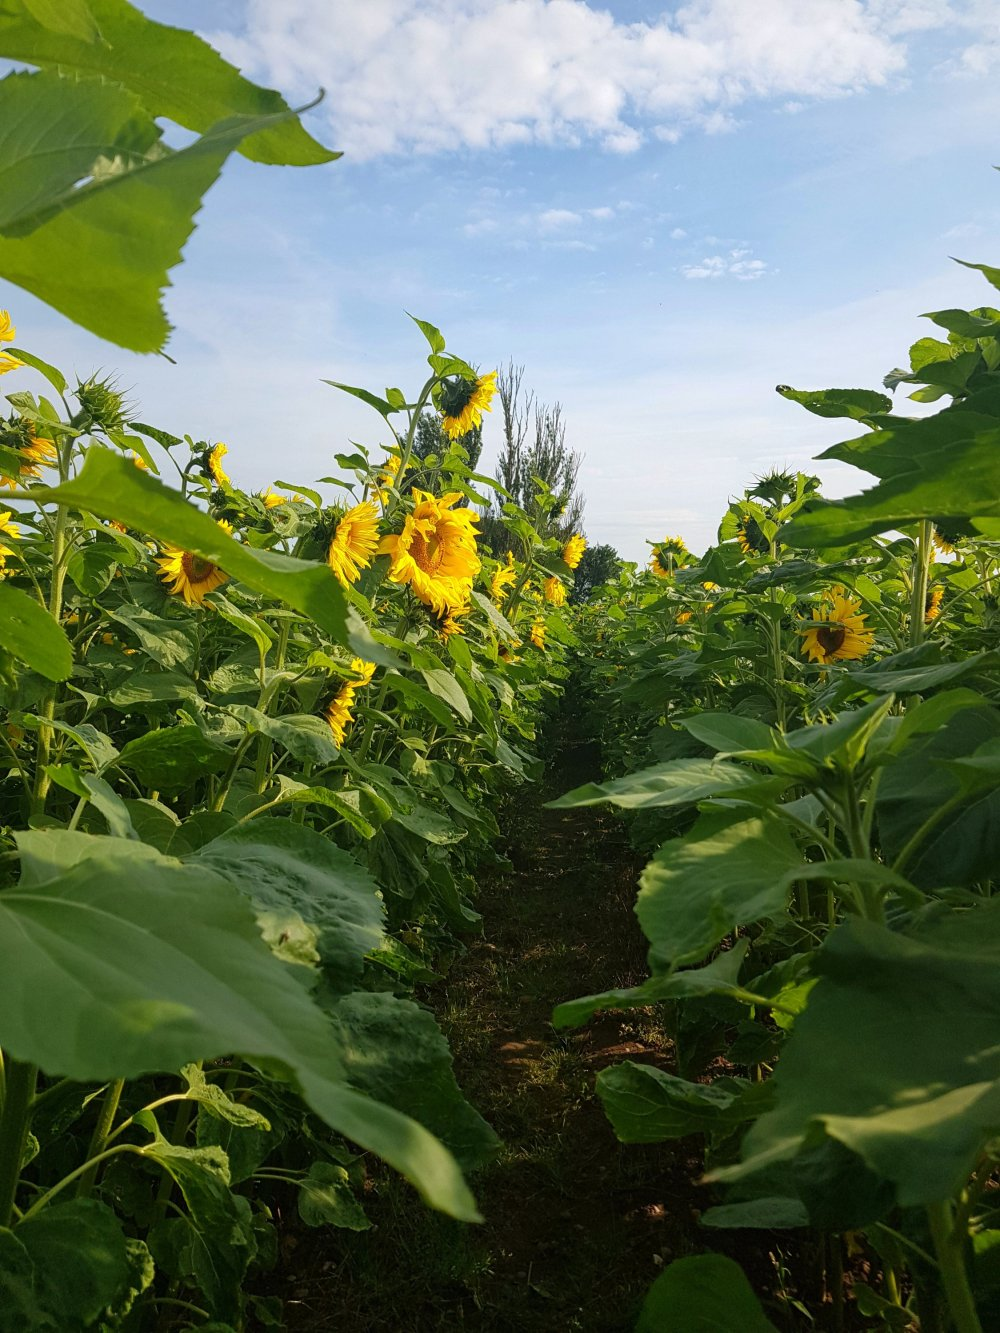 Pick your own sunflowers in Leicestershire